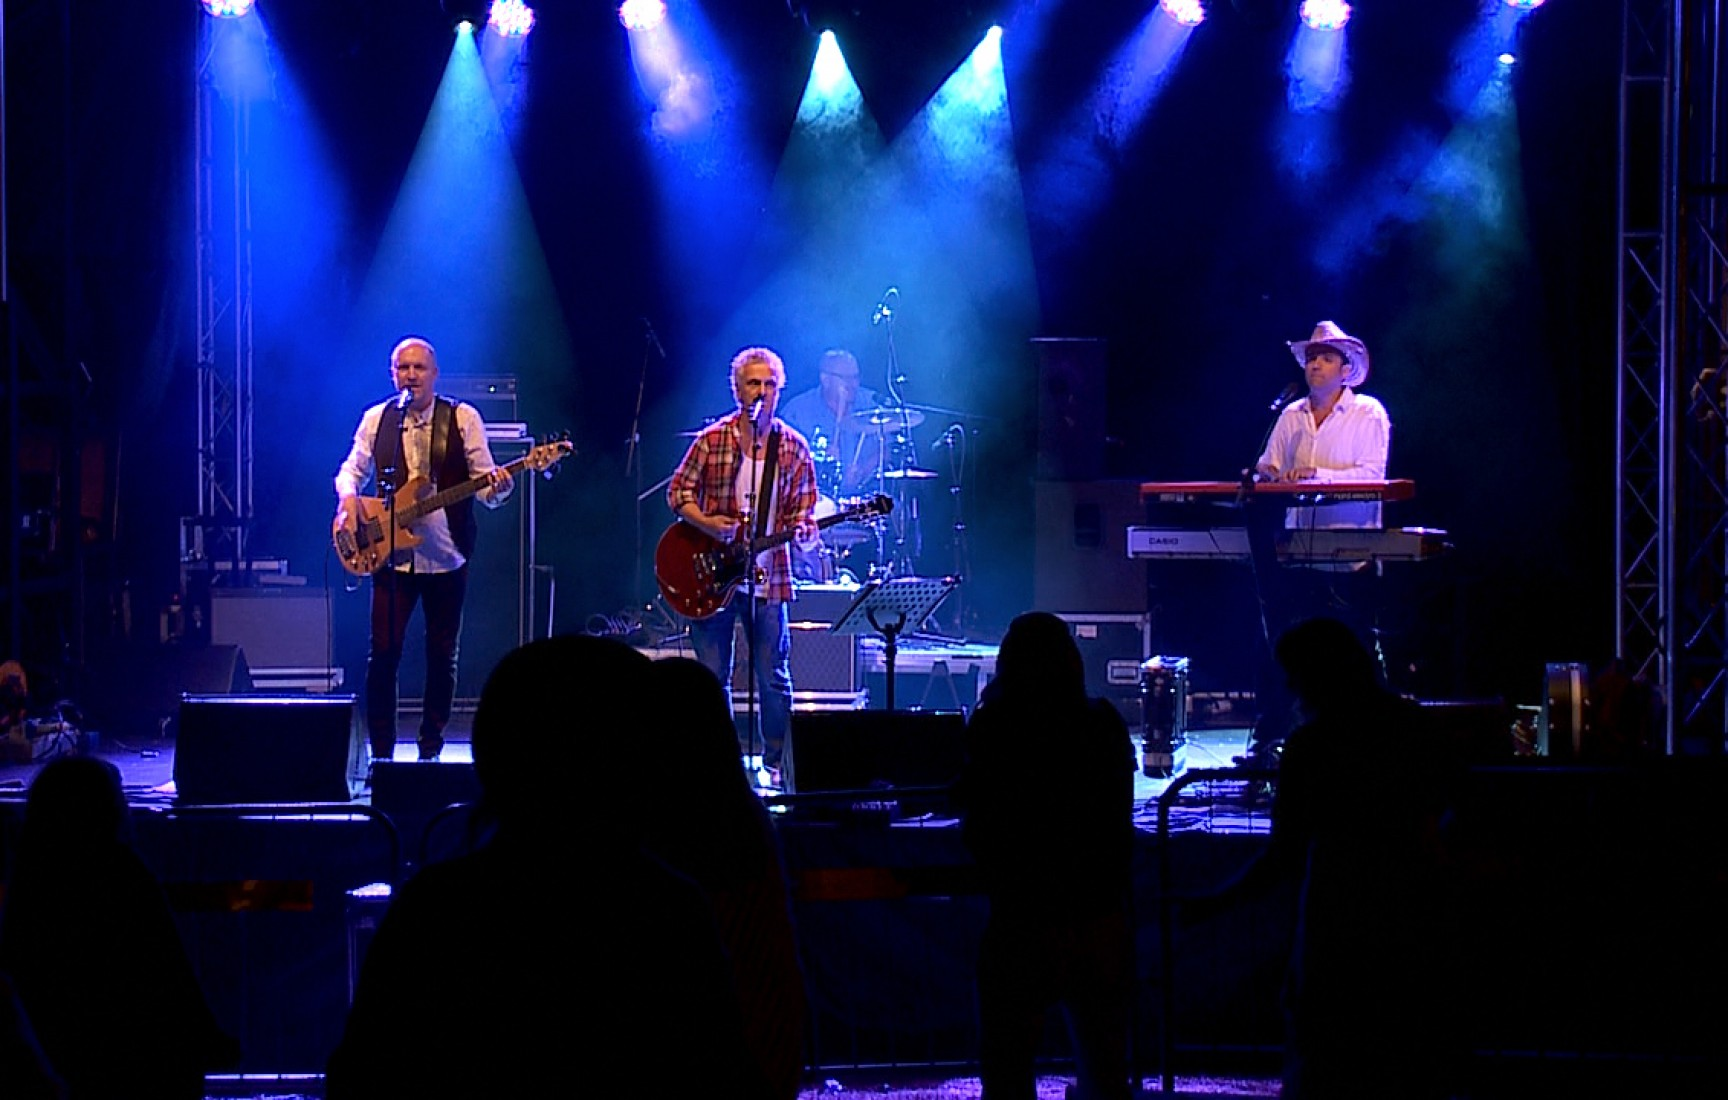 Glimt – Folk & Rock i Segmon, Rolf Carlsson Band (ep 3:6)